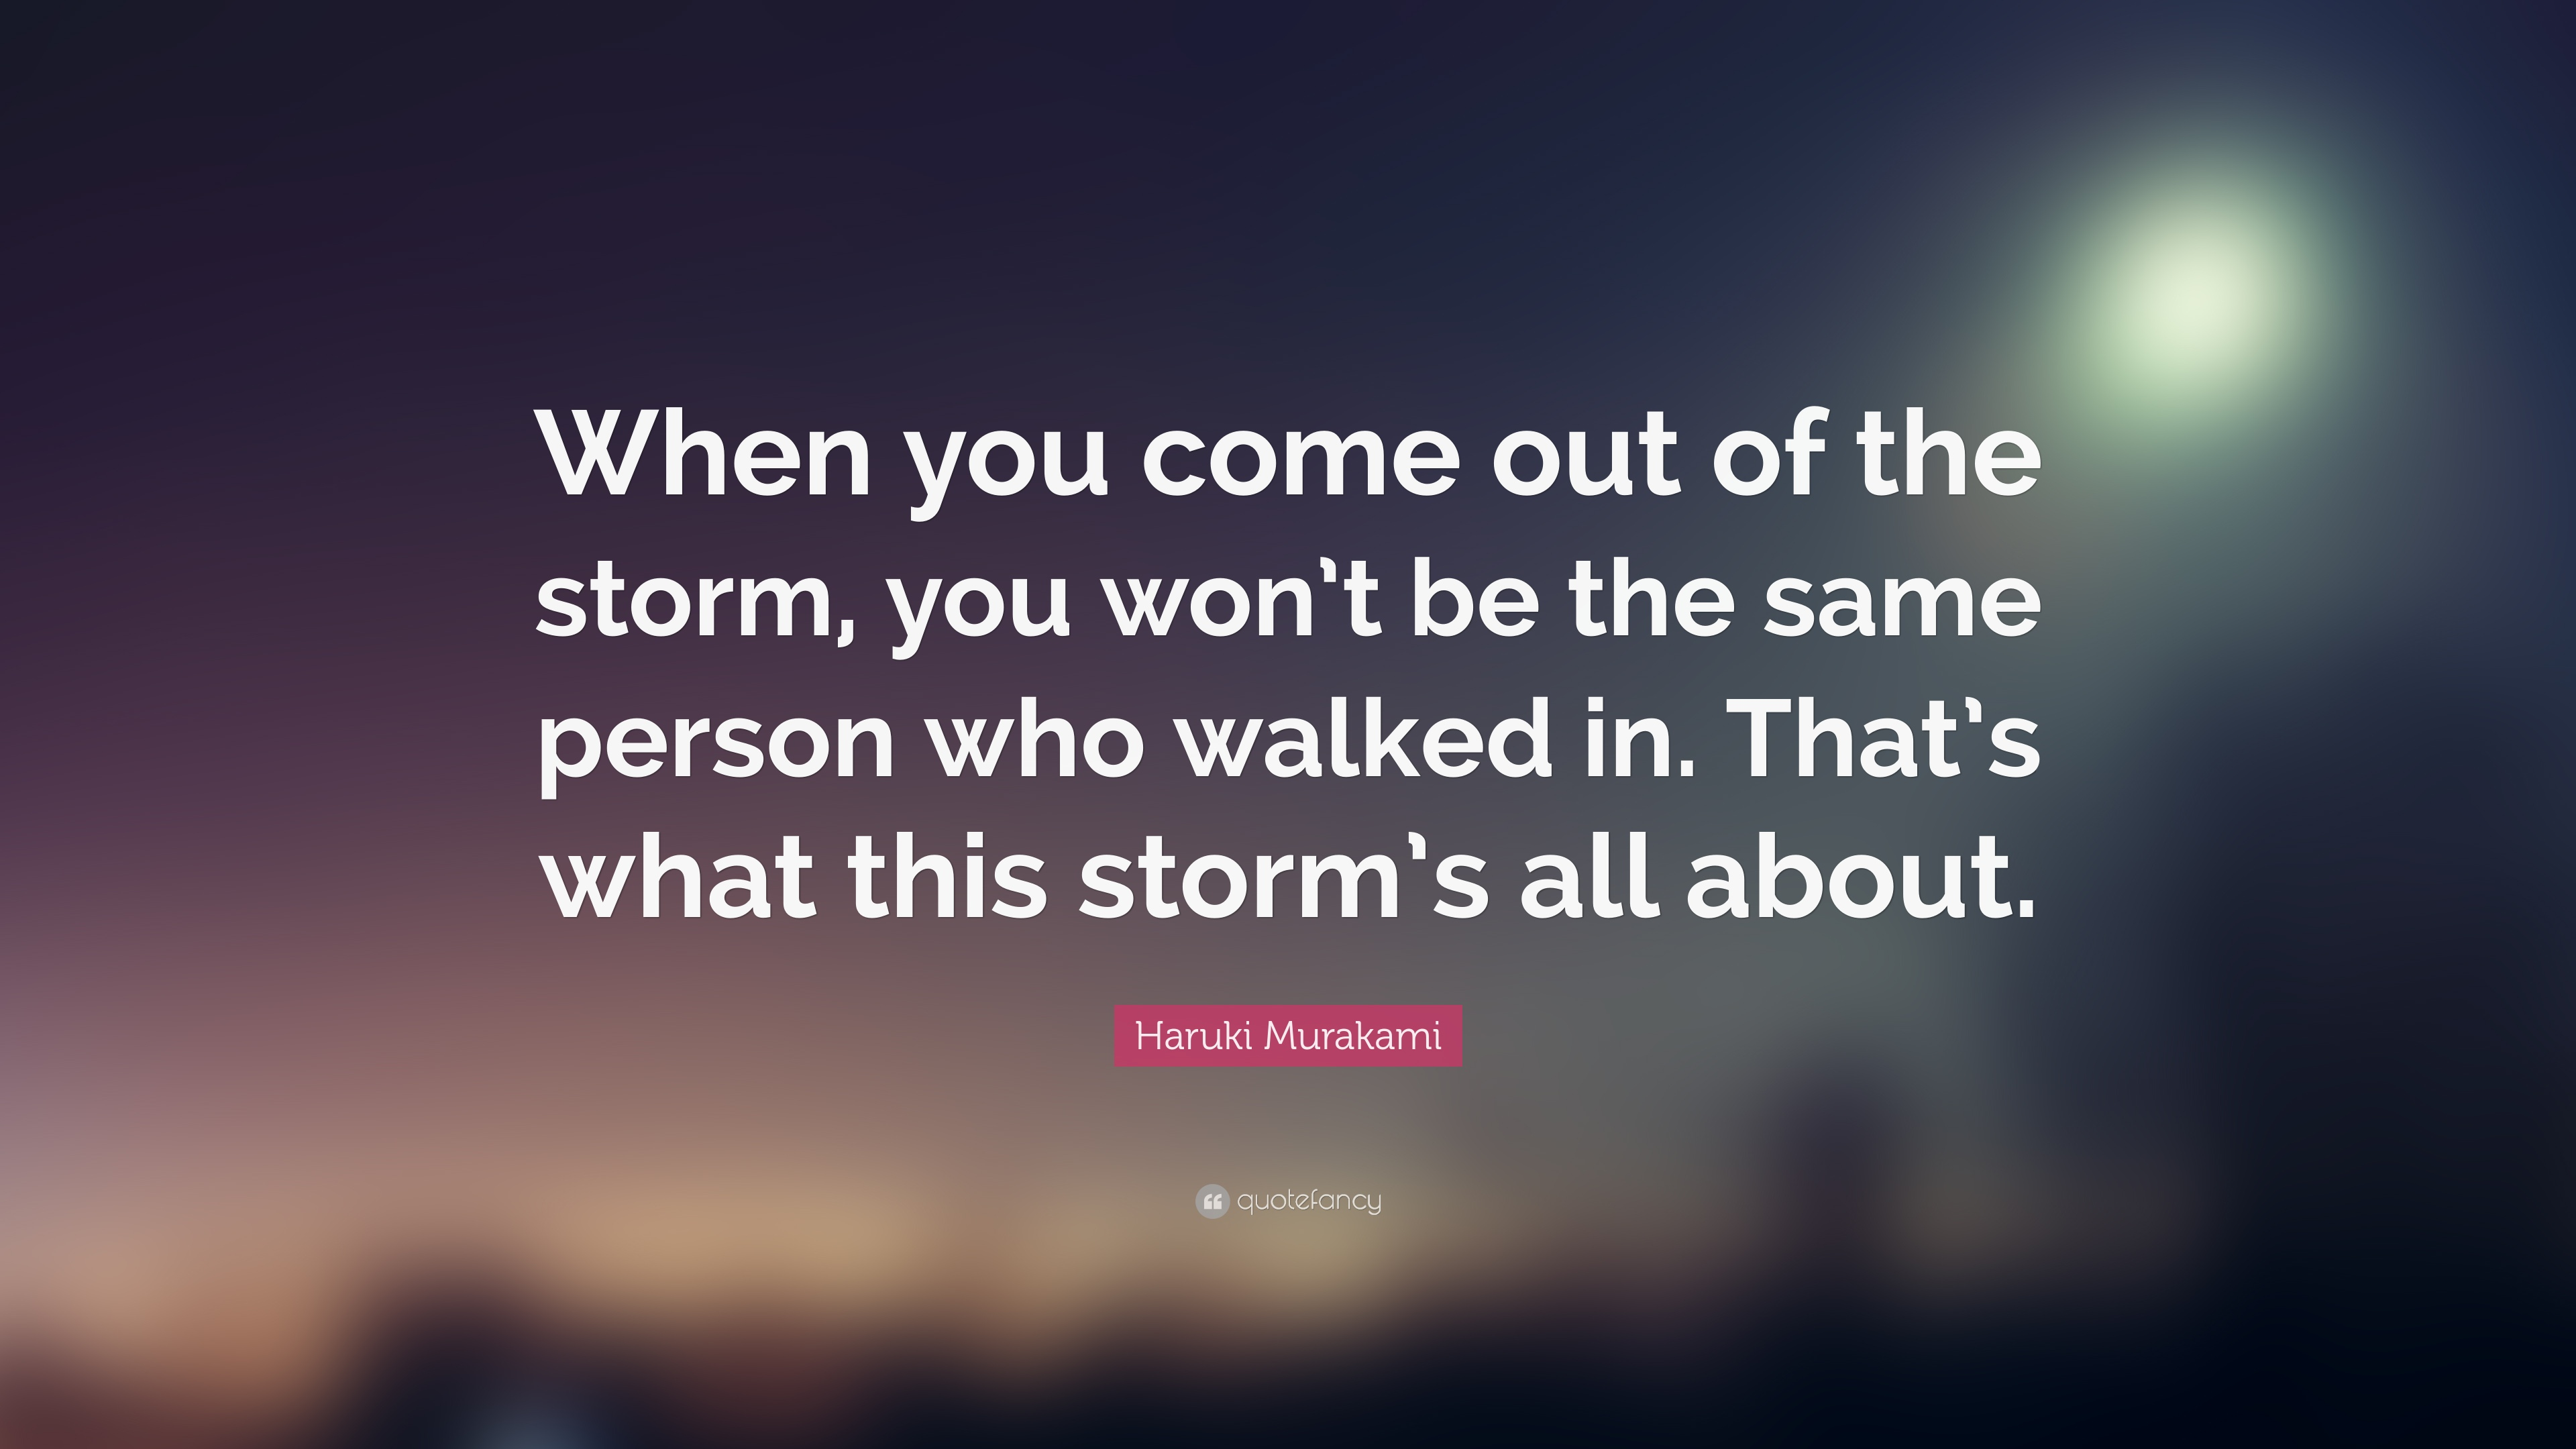 haruki murakami quote when you come out of the storm you won t be